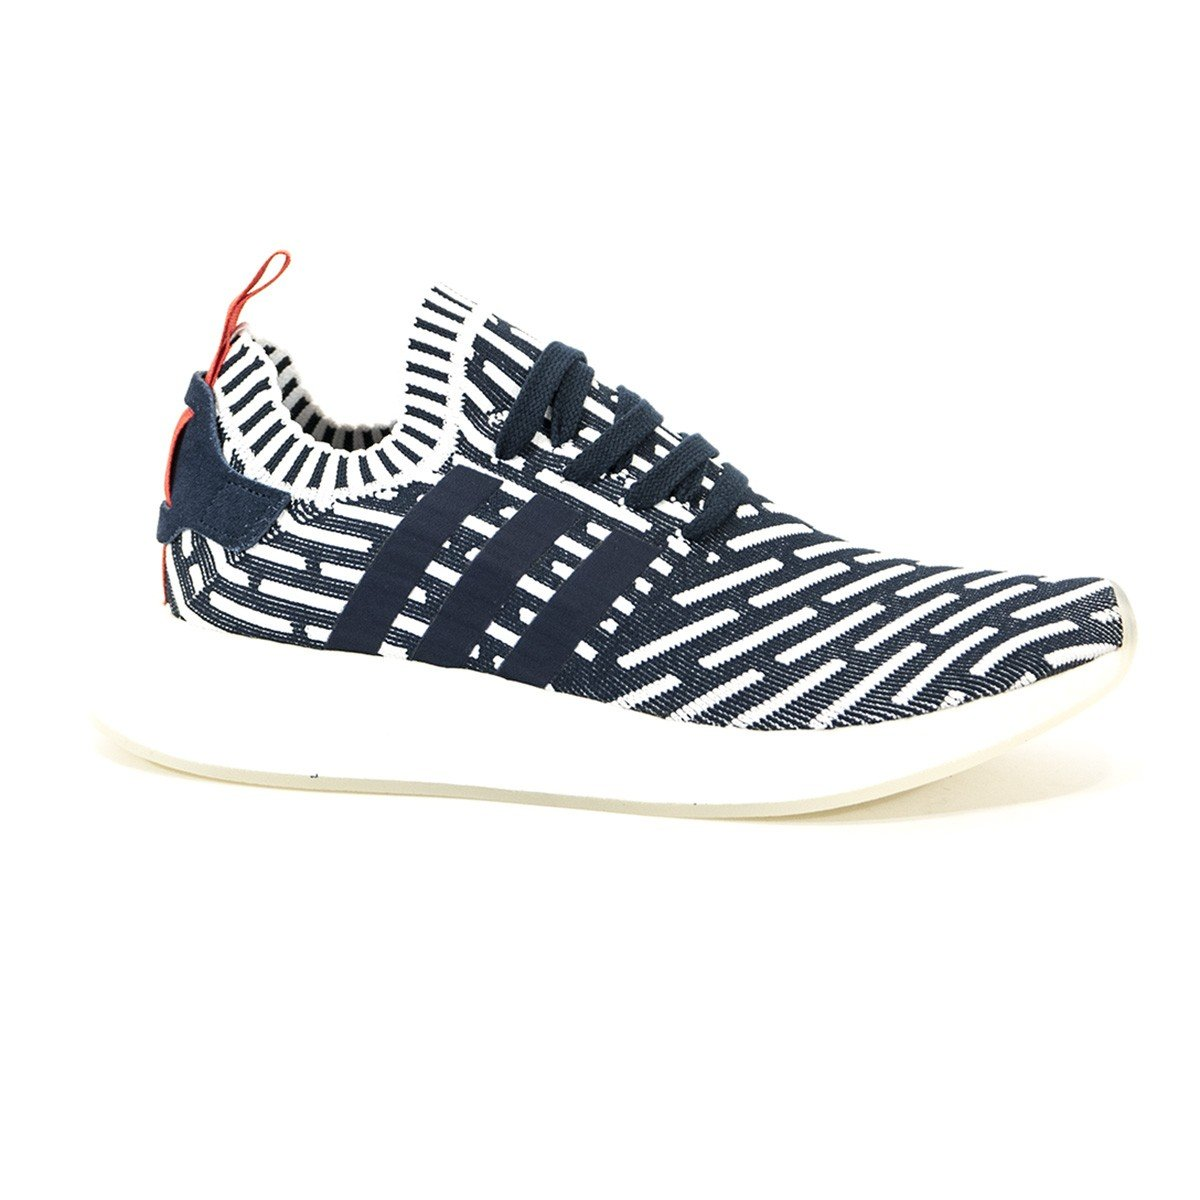 CblueE CblueE Adidas ORIGINALS Mens NMD_r2 Pk Running shoes